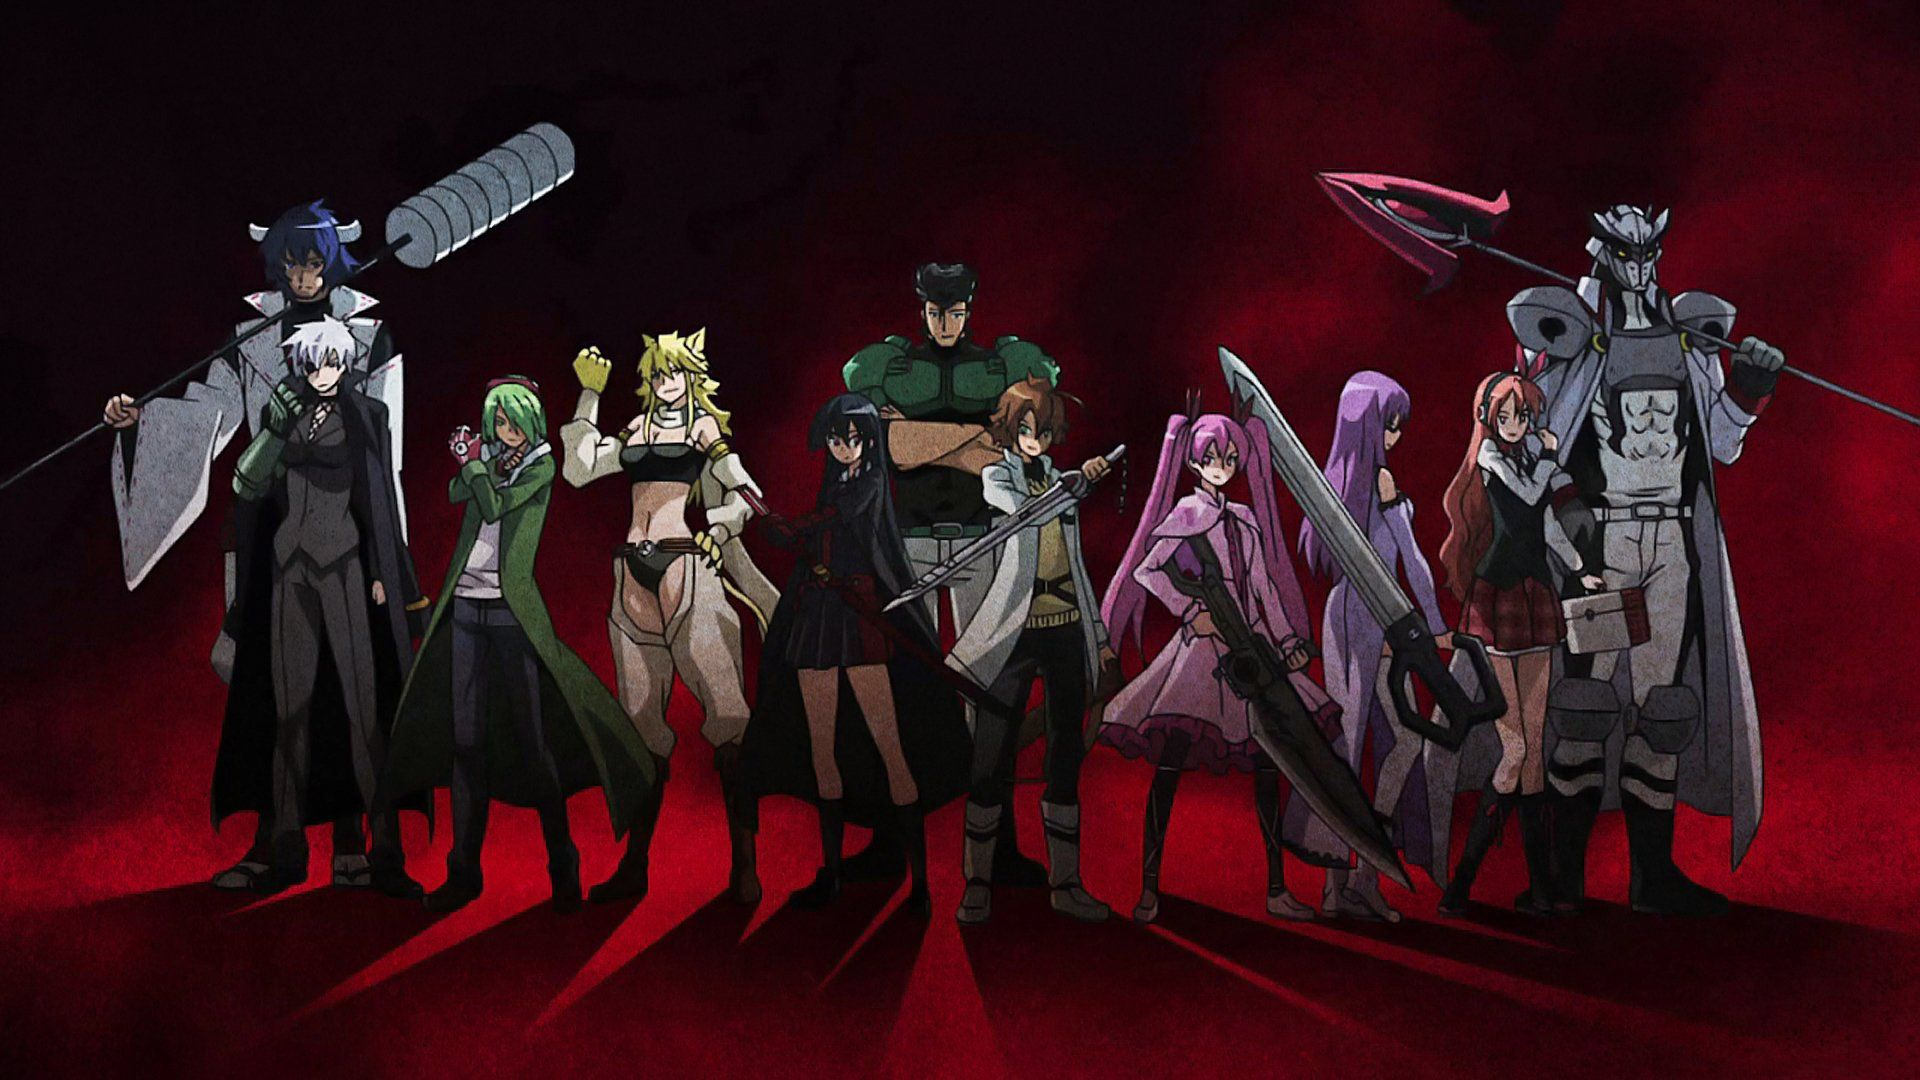 1920x1080 Akame Ga Kill Wallpaper Background Image View